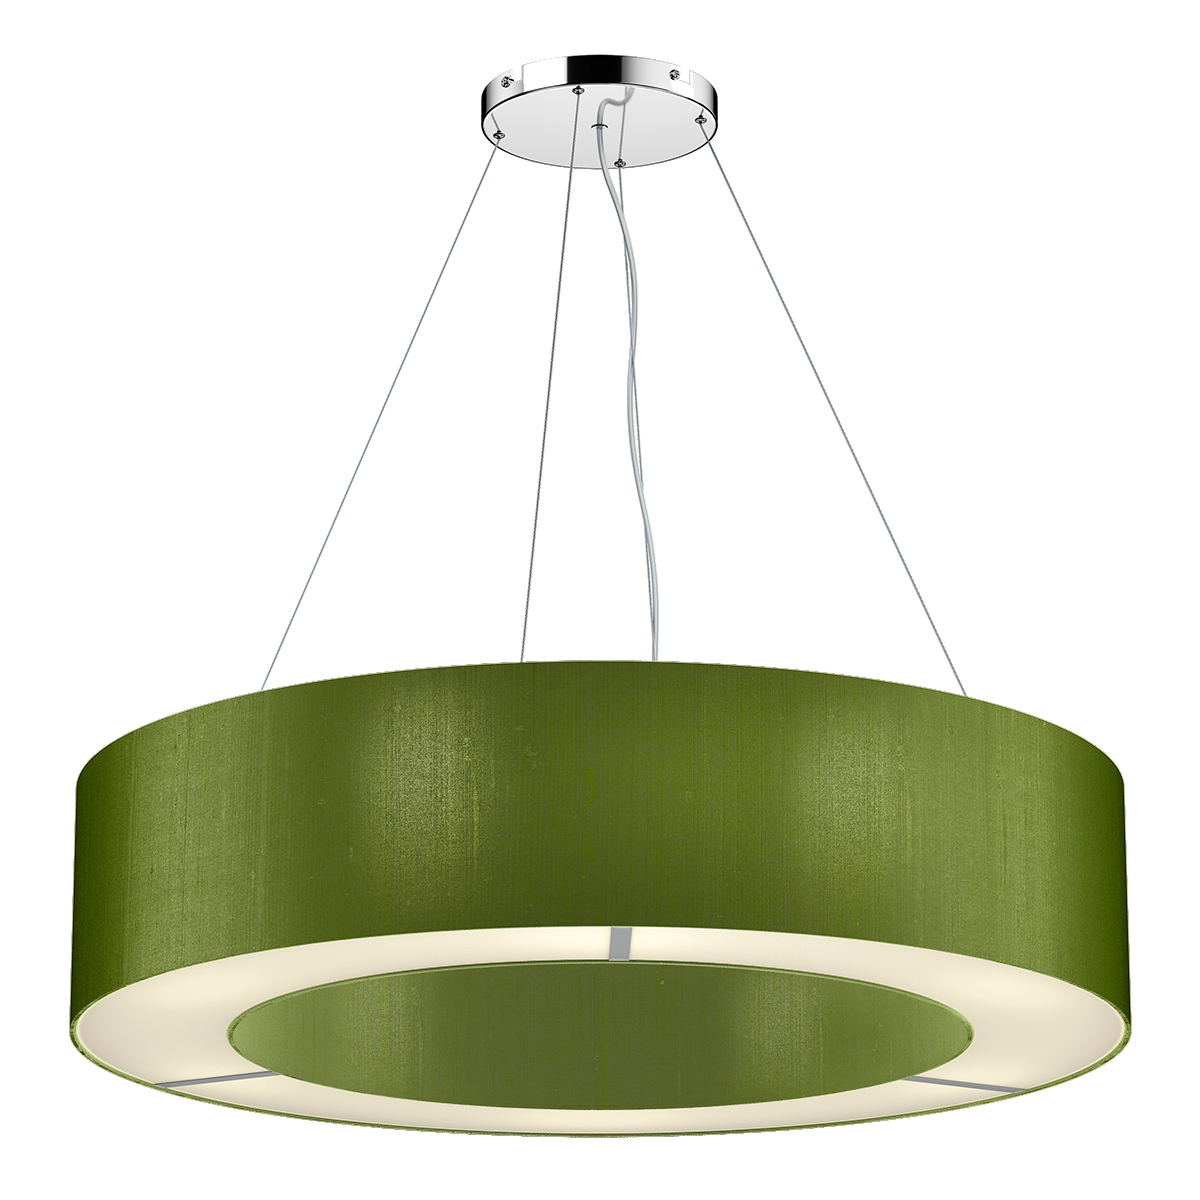 David hunt lighting polo silk 85cm 6 light pendant pol06 hover to zoom mozeypictures Image collections